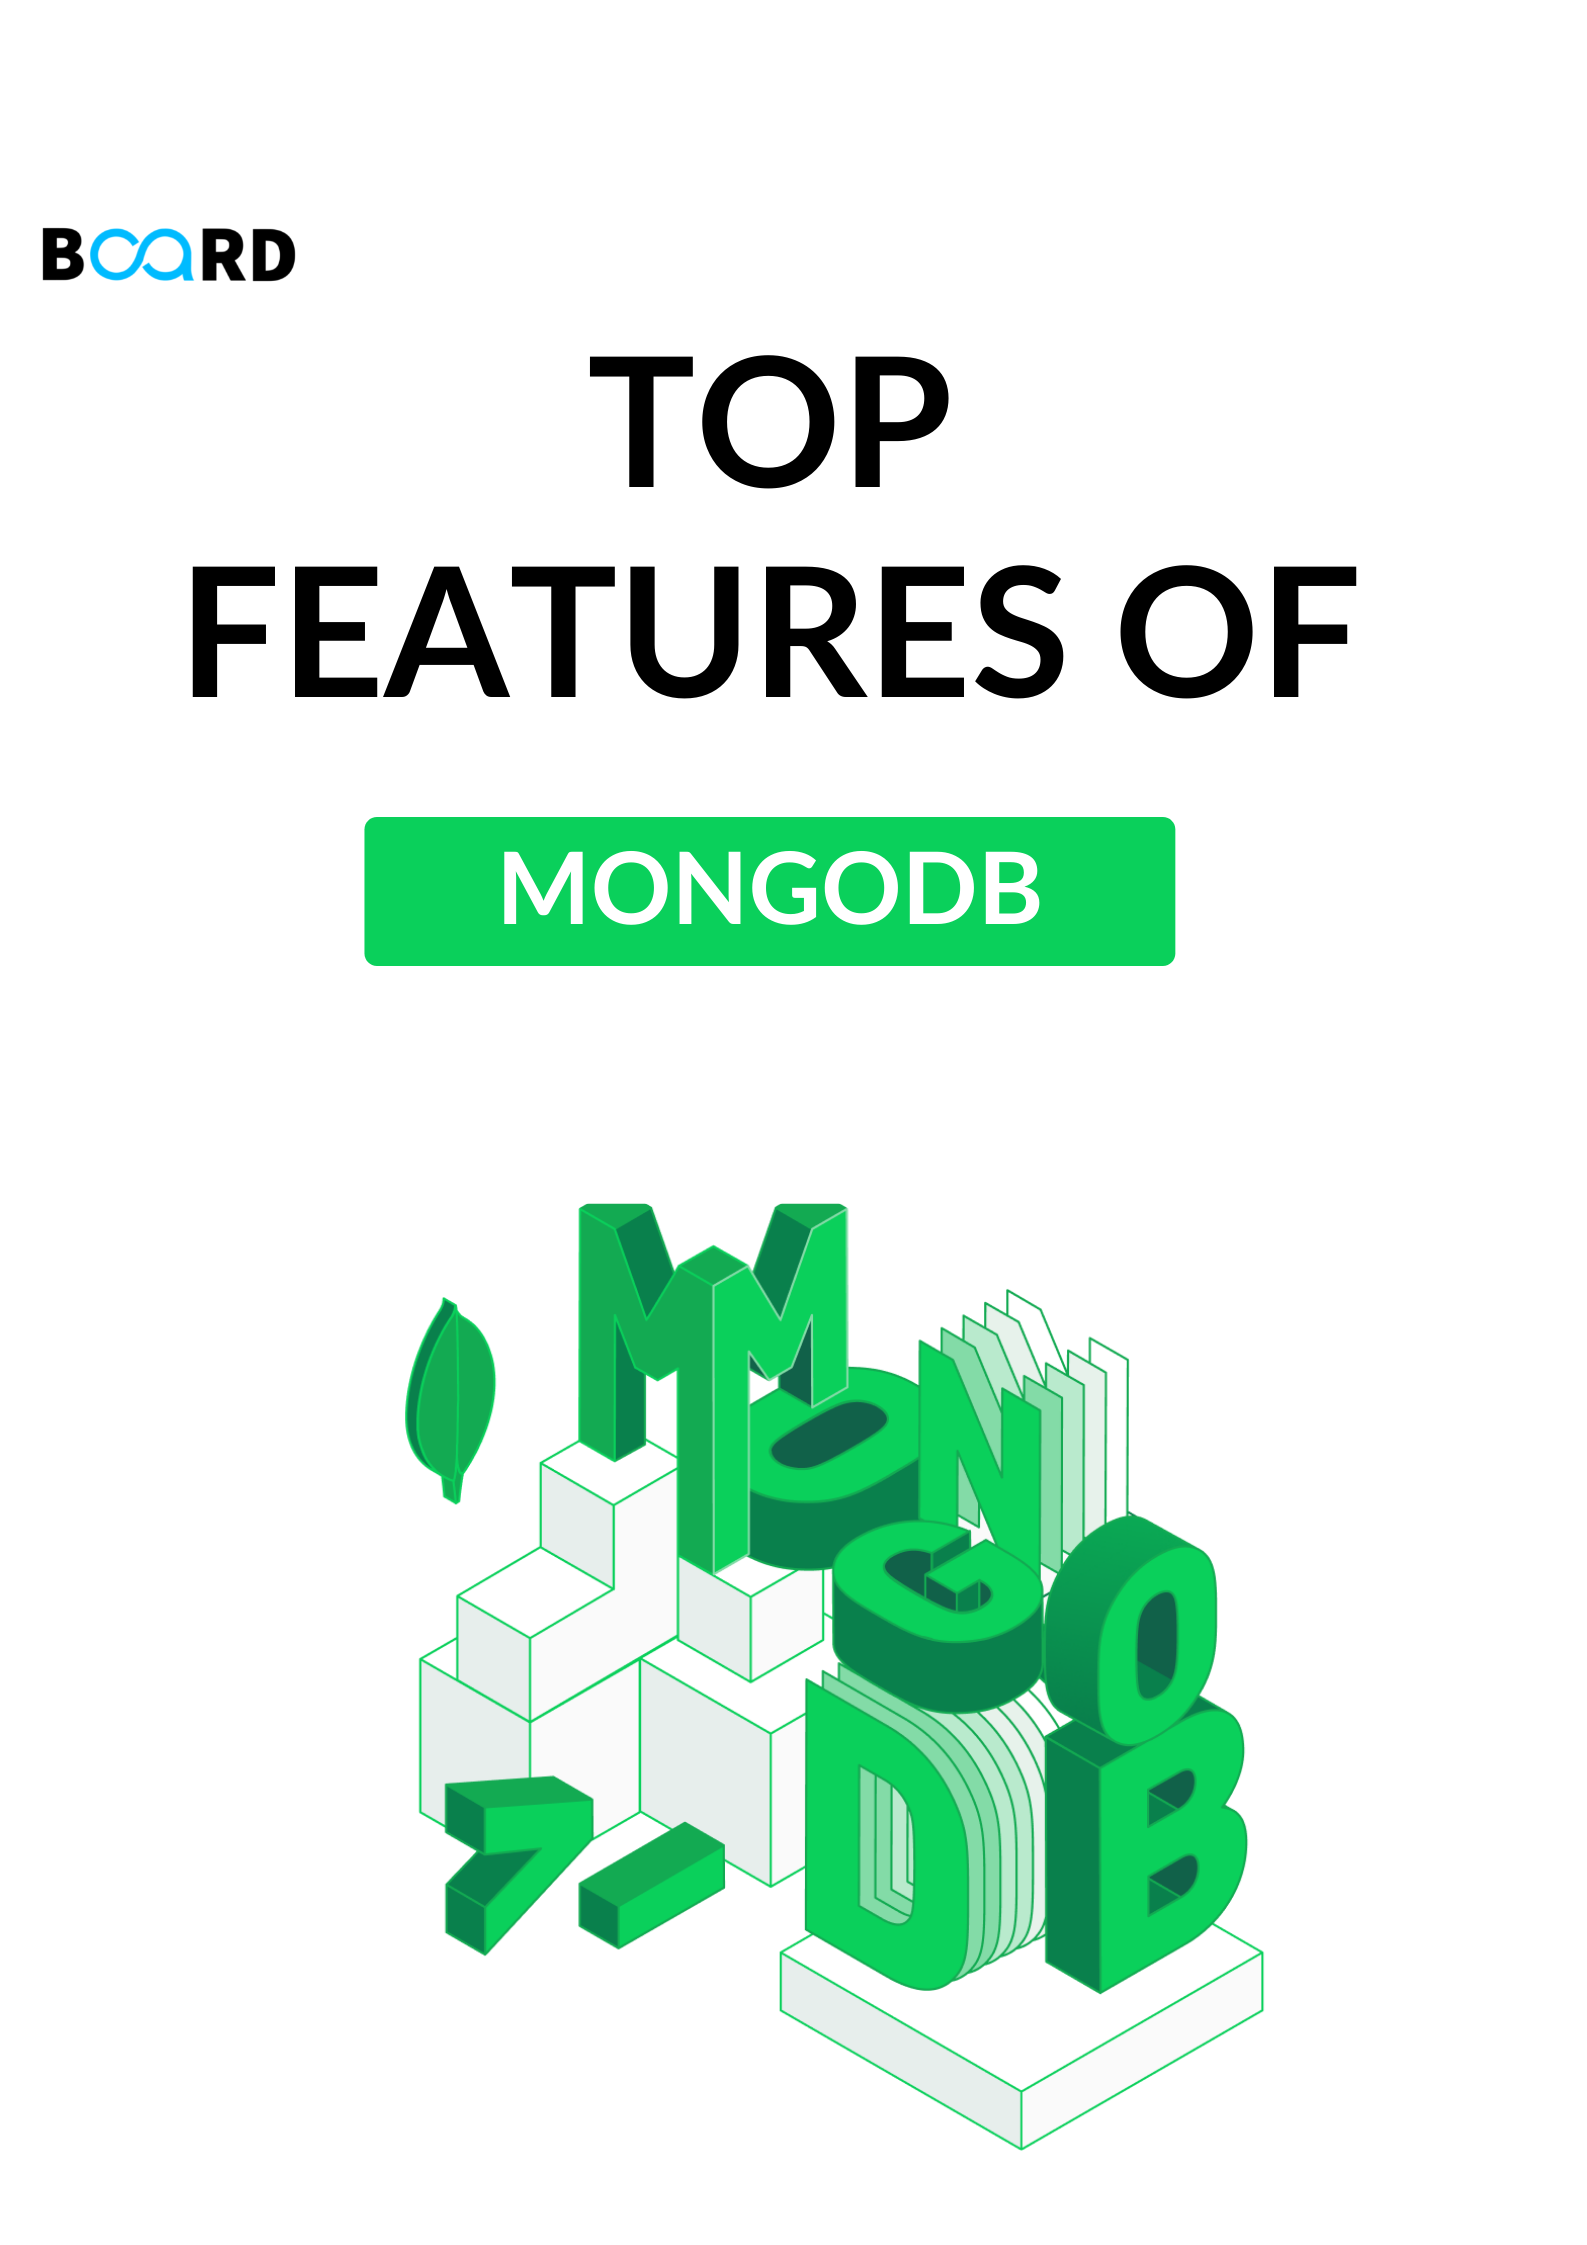 Top Features of MongoDB